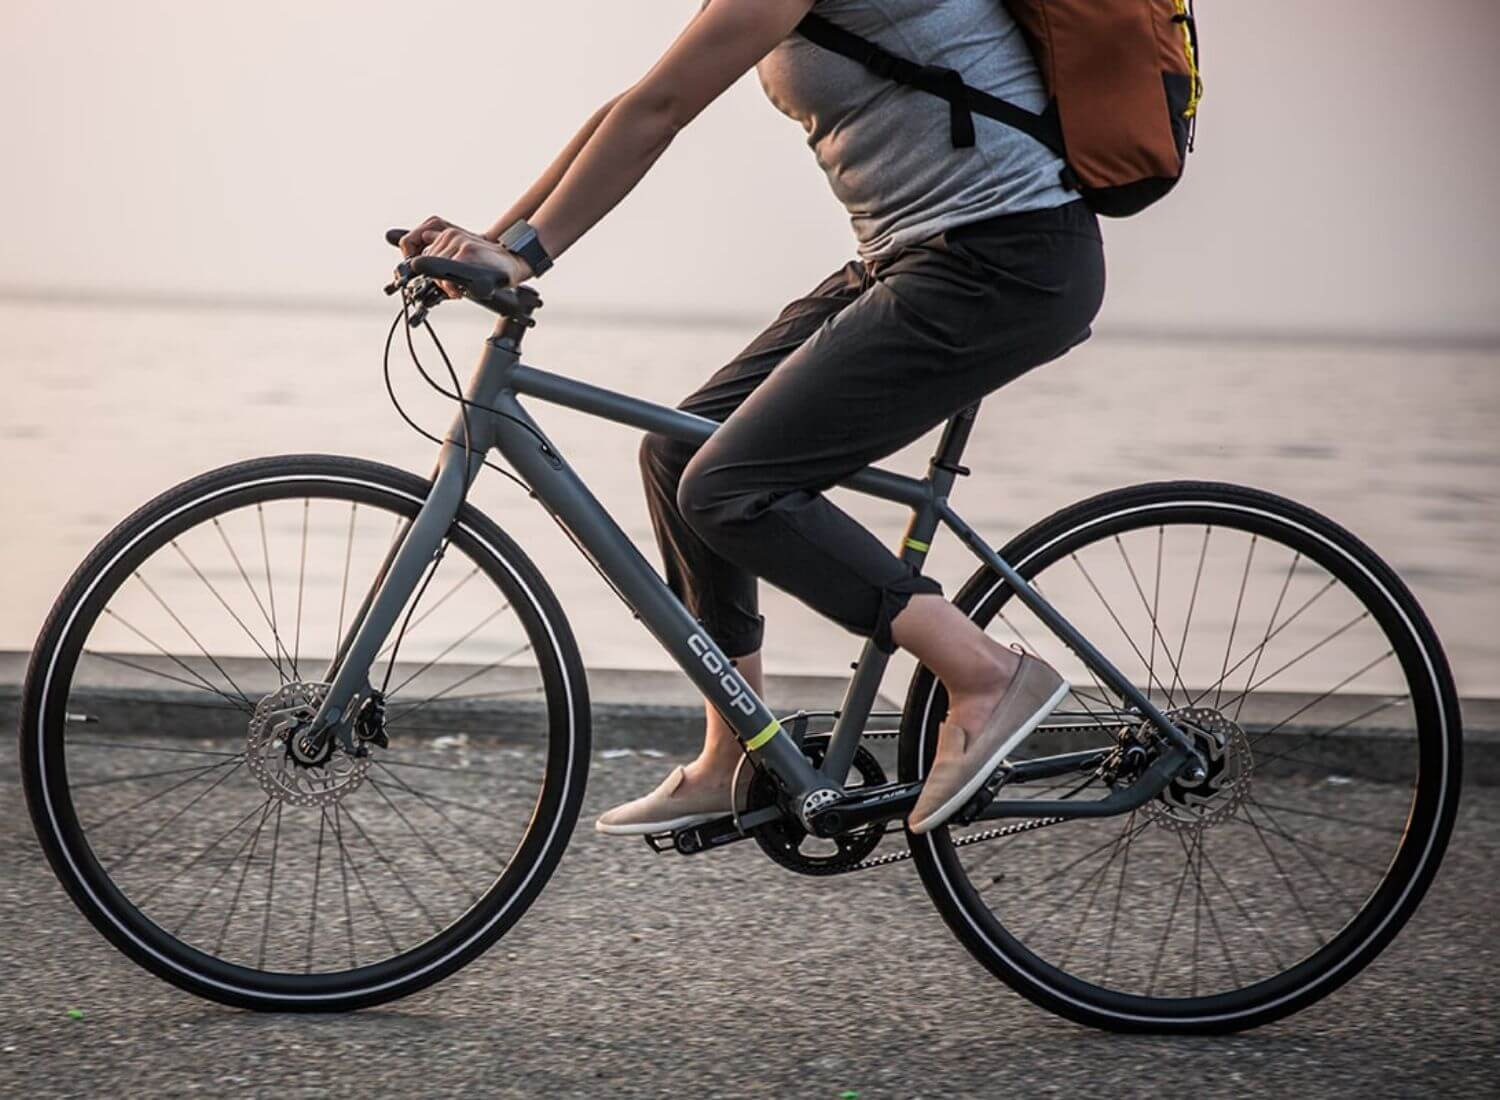 Why Hybrid Bikes Are Great For Beginner Riders?